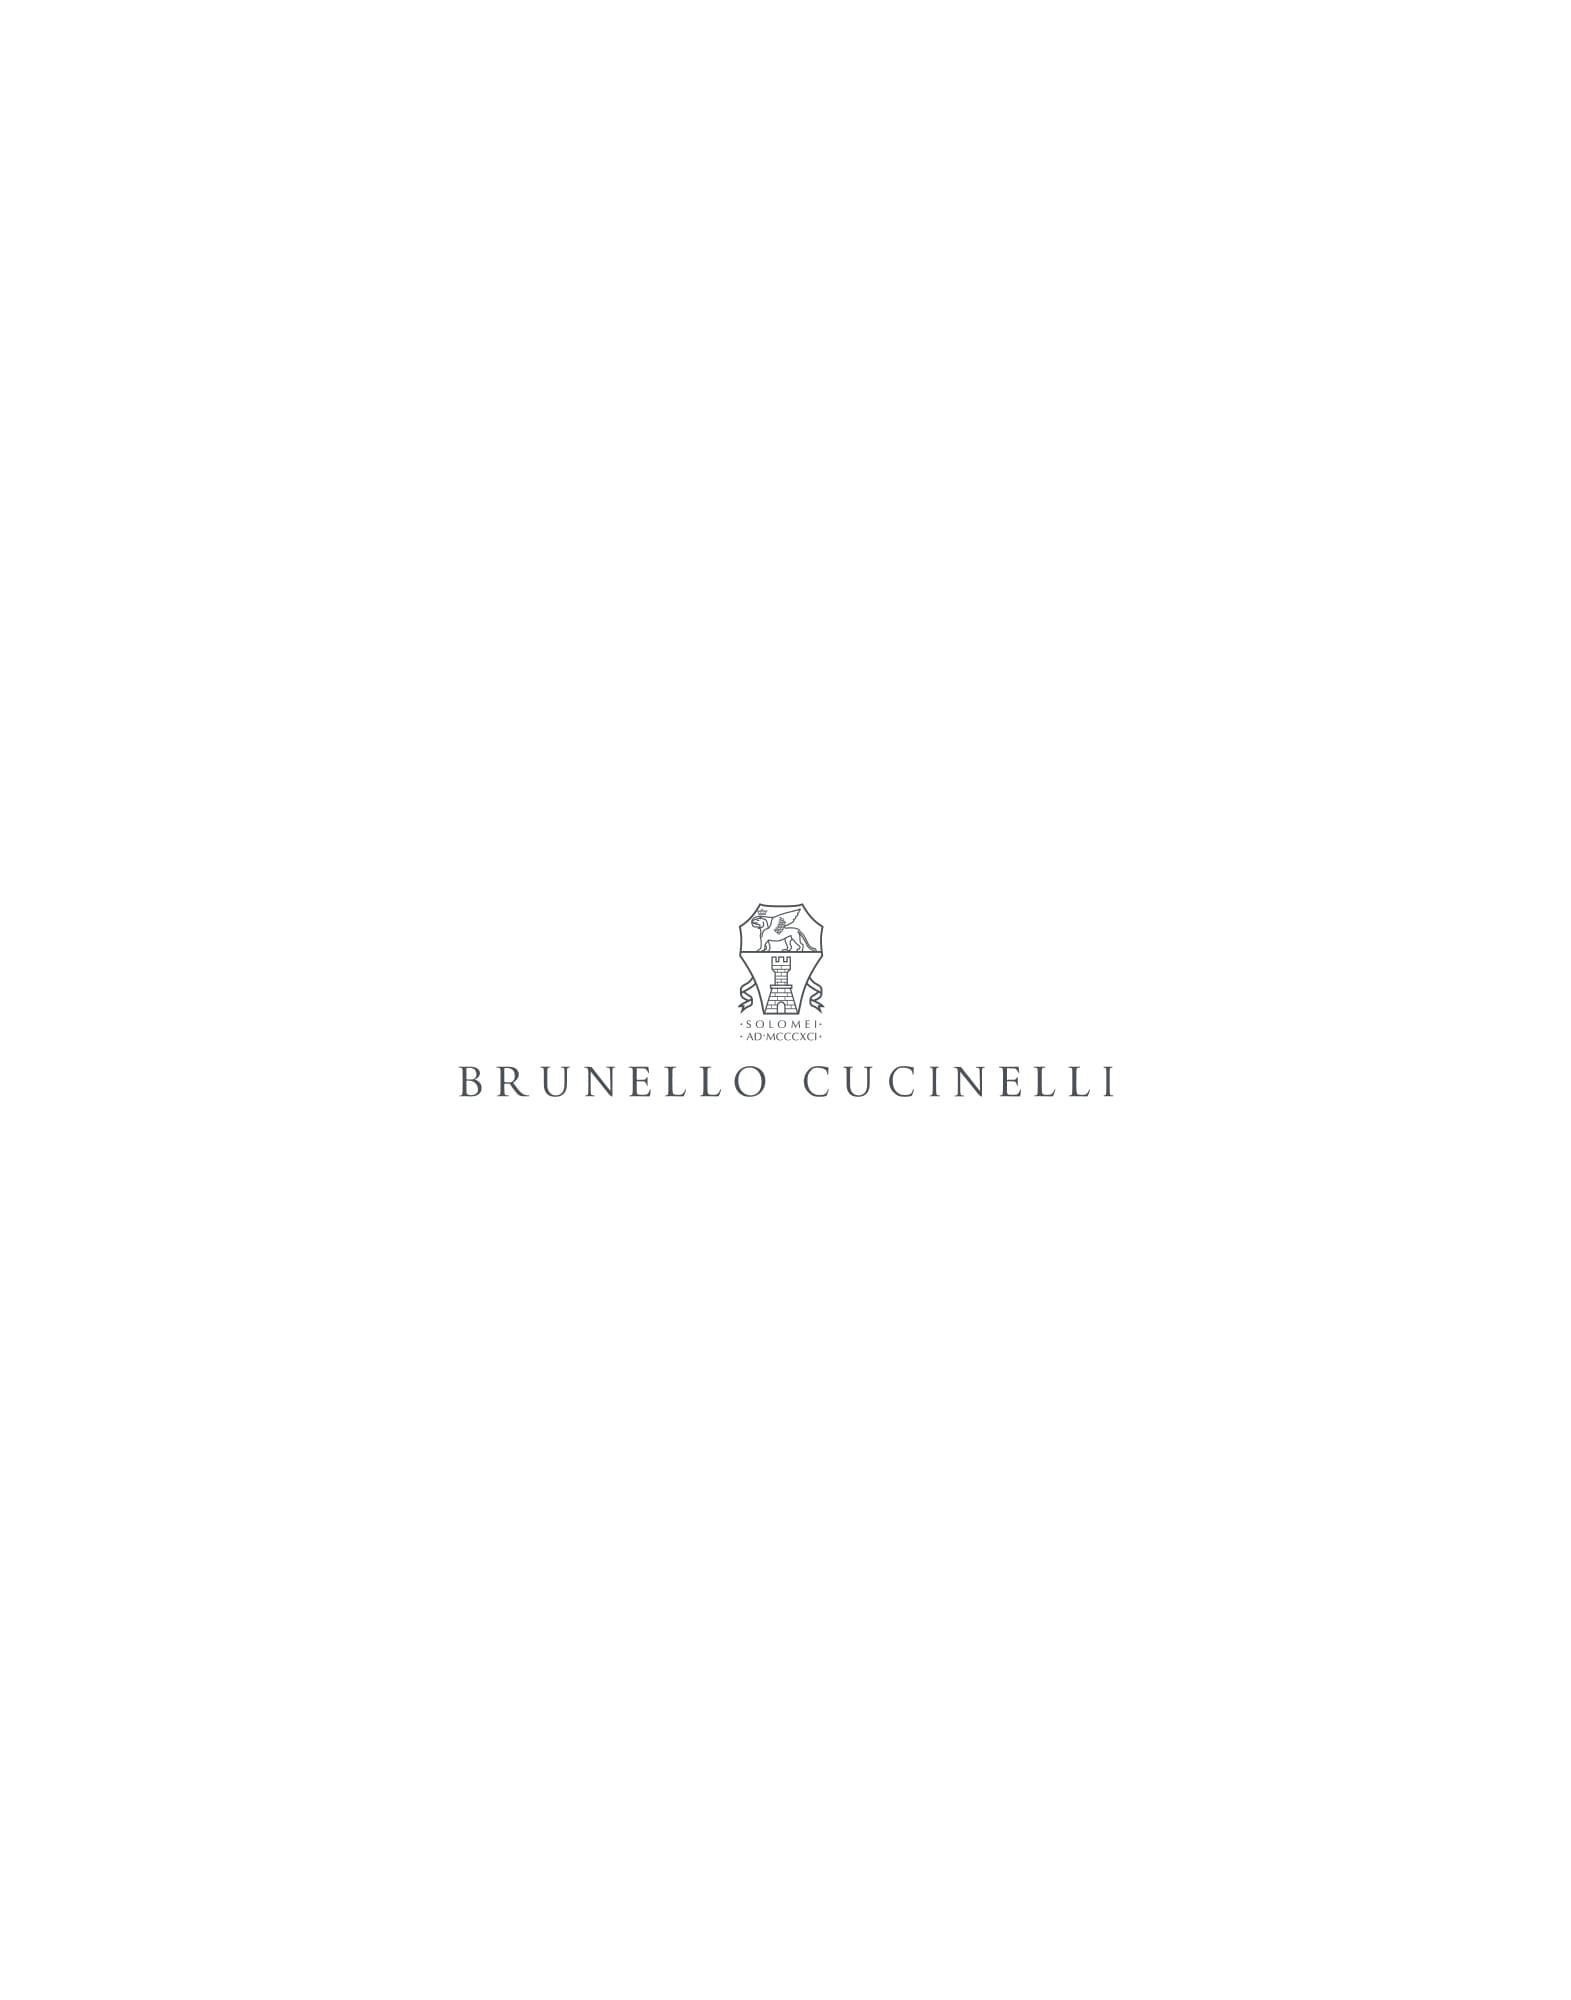 Leather boots Black Woman - Brunello Cucinelli